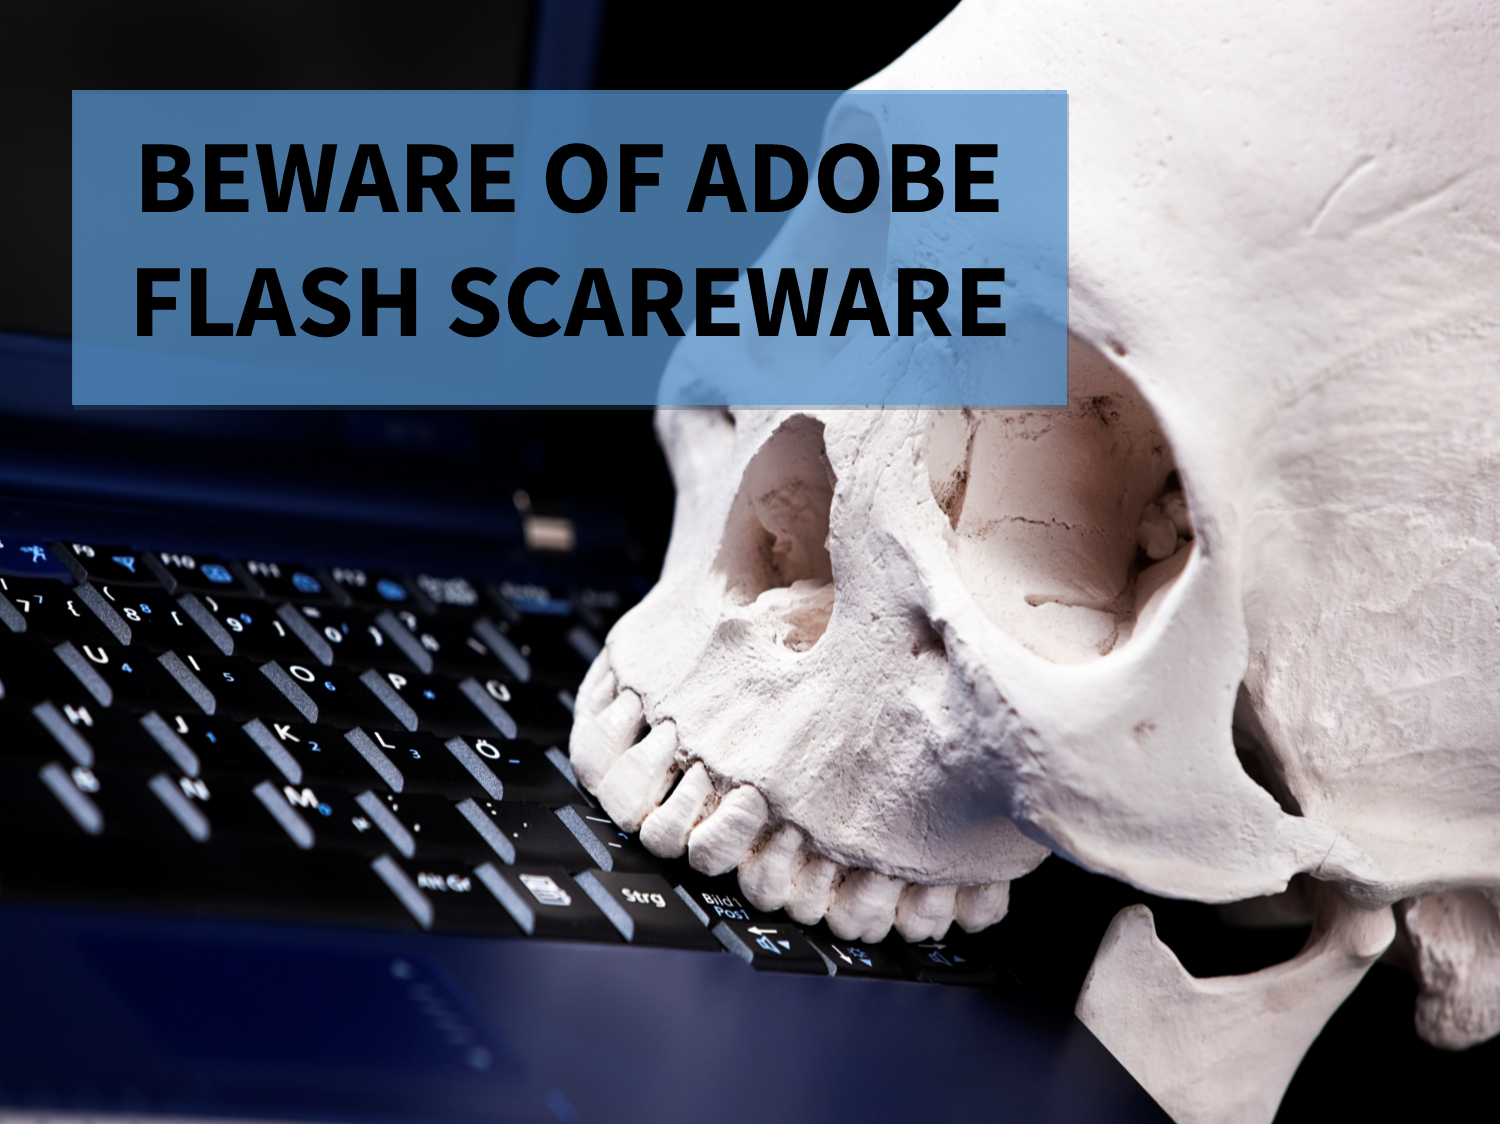 Beware of Adobe Flash Scareware